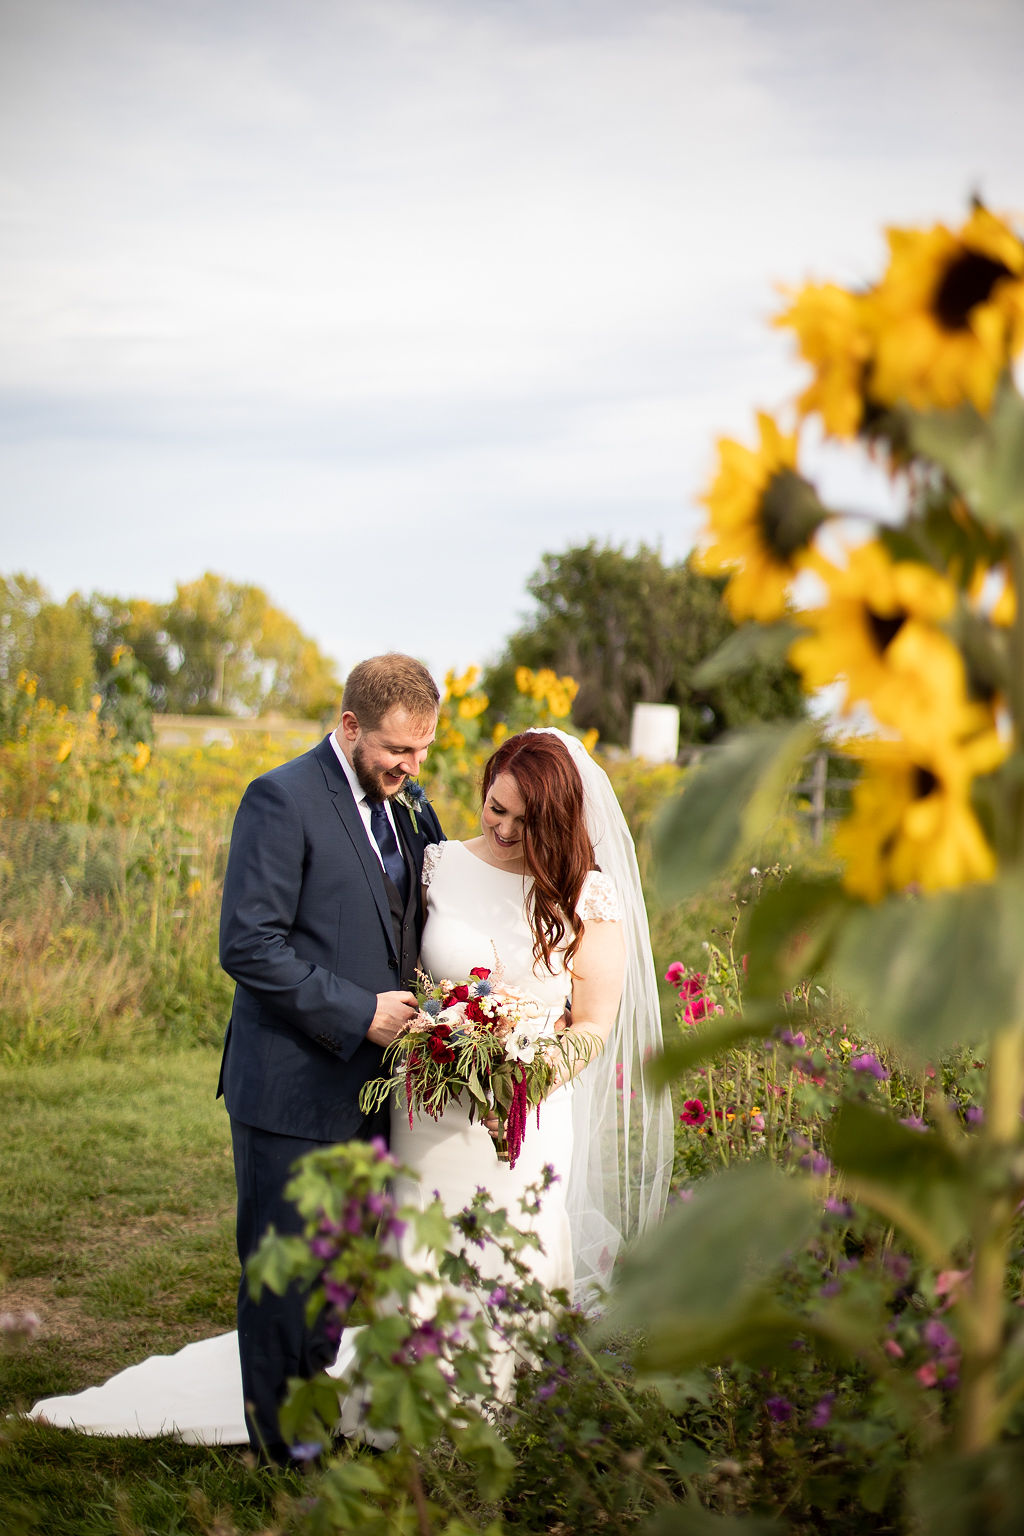 bride and groom stand beside wild flower garden at their outdoor wedding in Calgary, Alberta. www.thegathered.ca